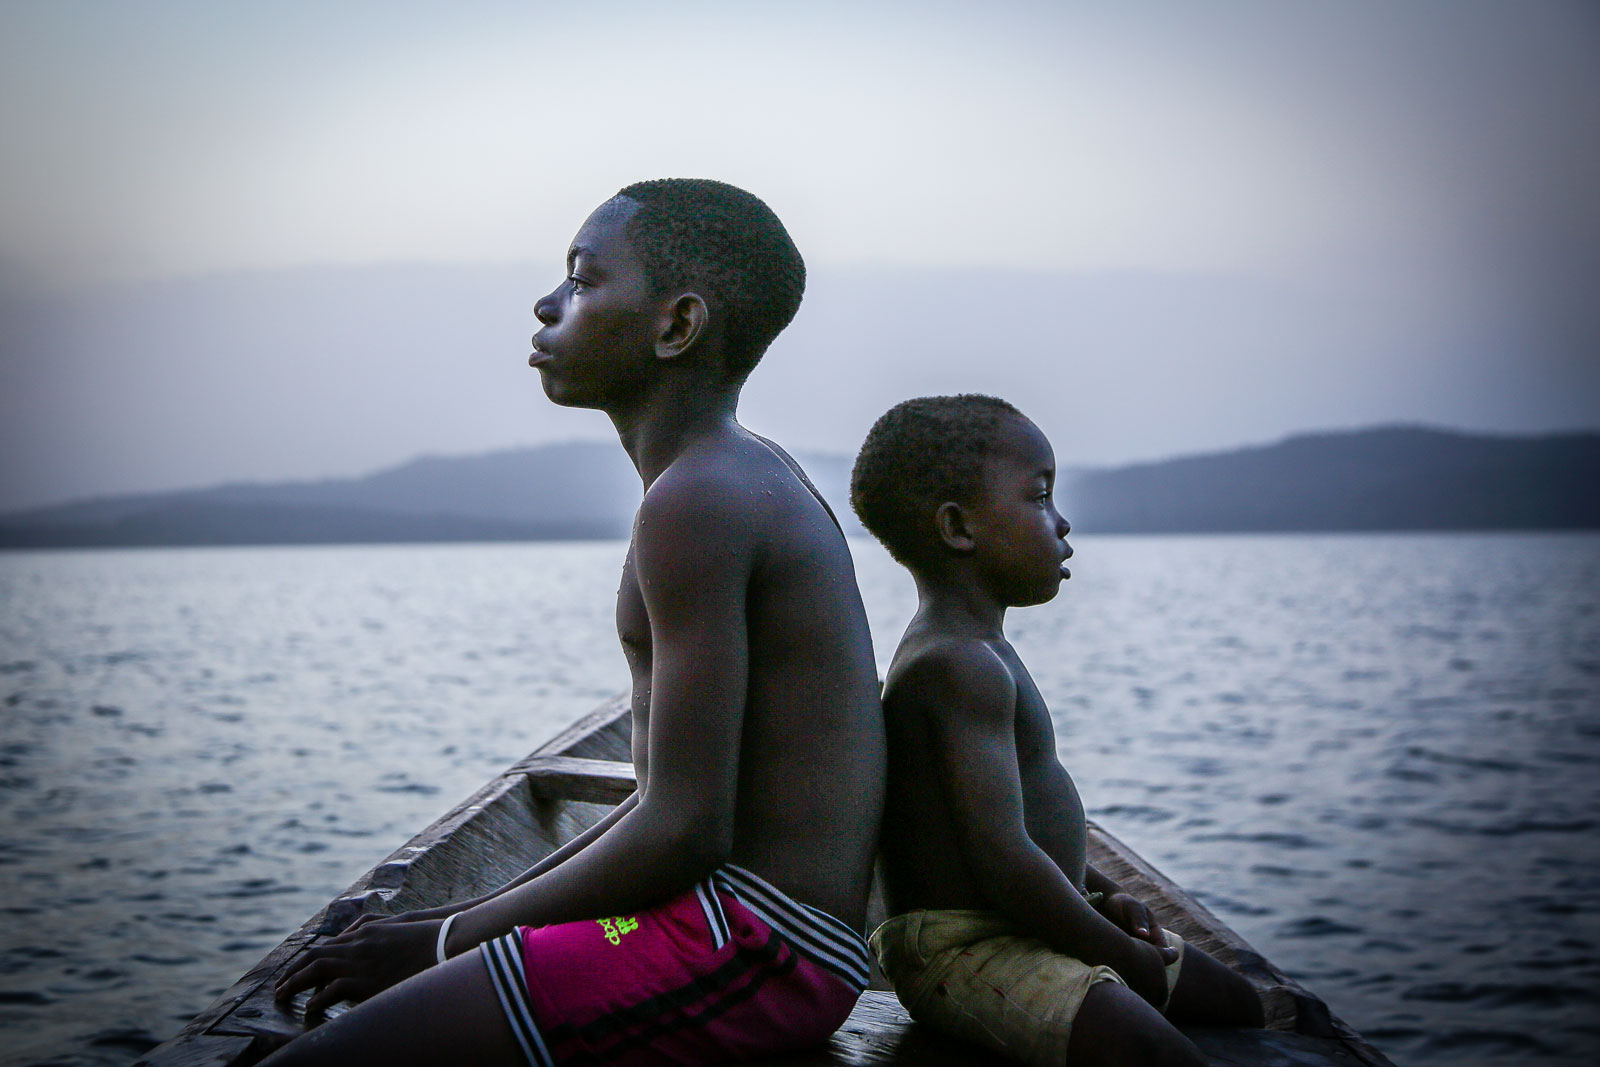 15 Powerful Photos that Capture Child Slavery #13